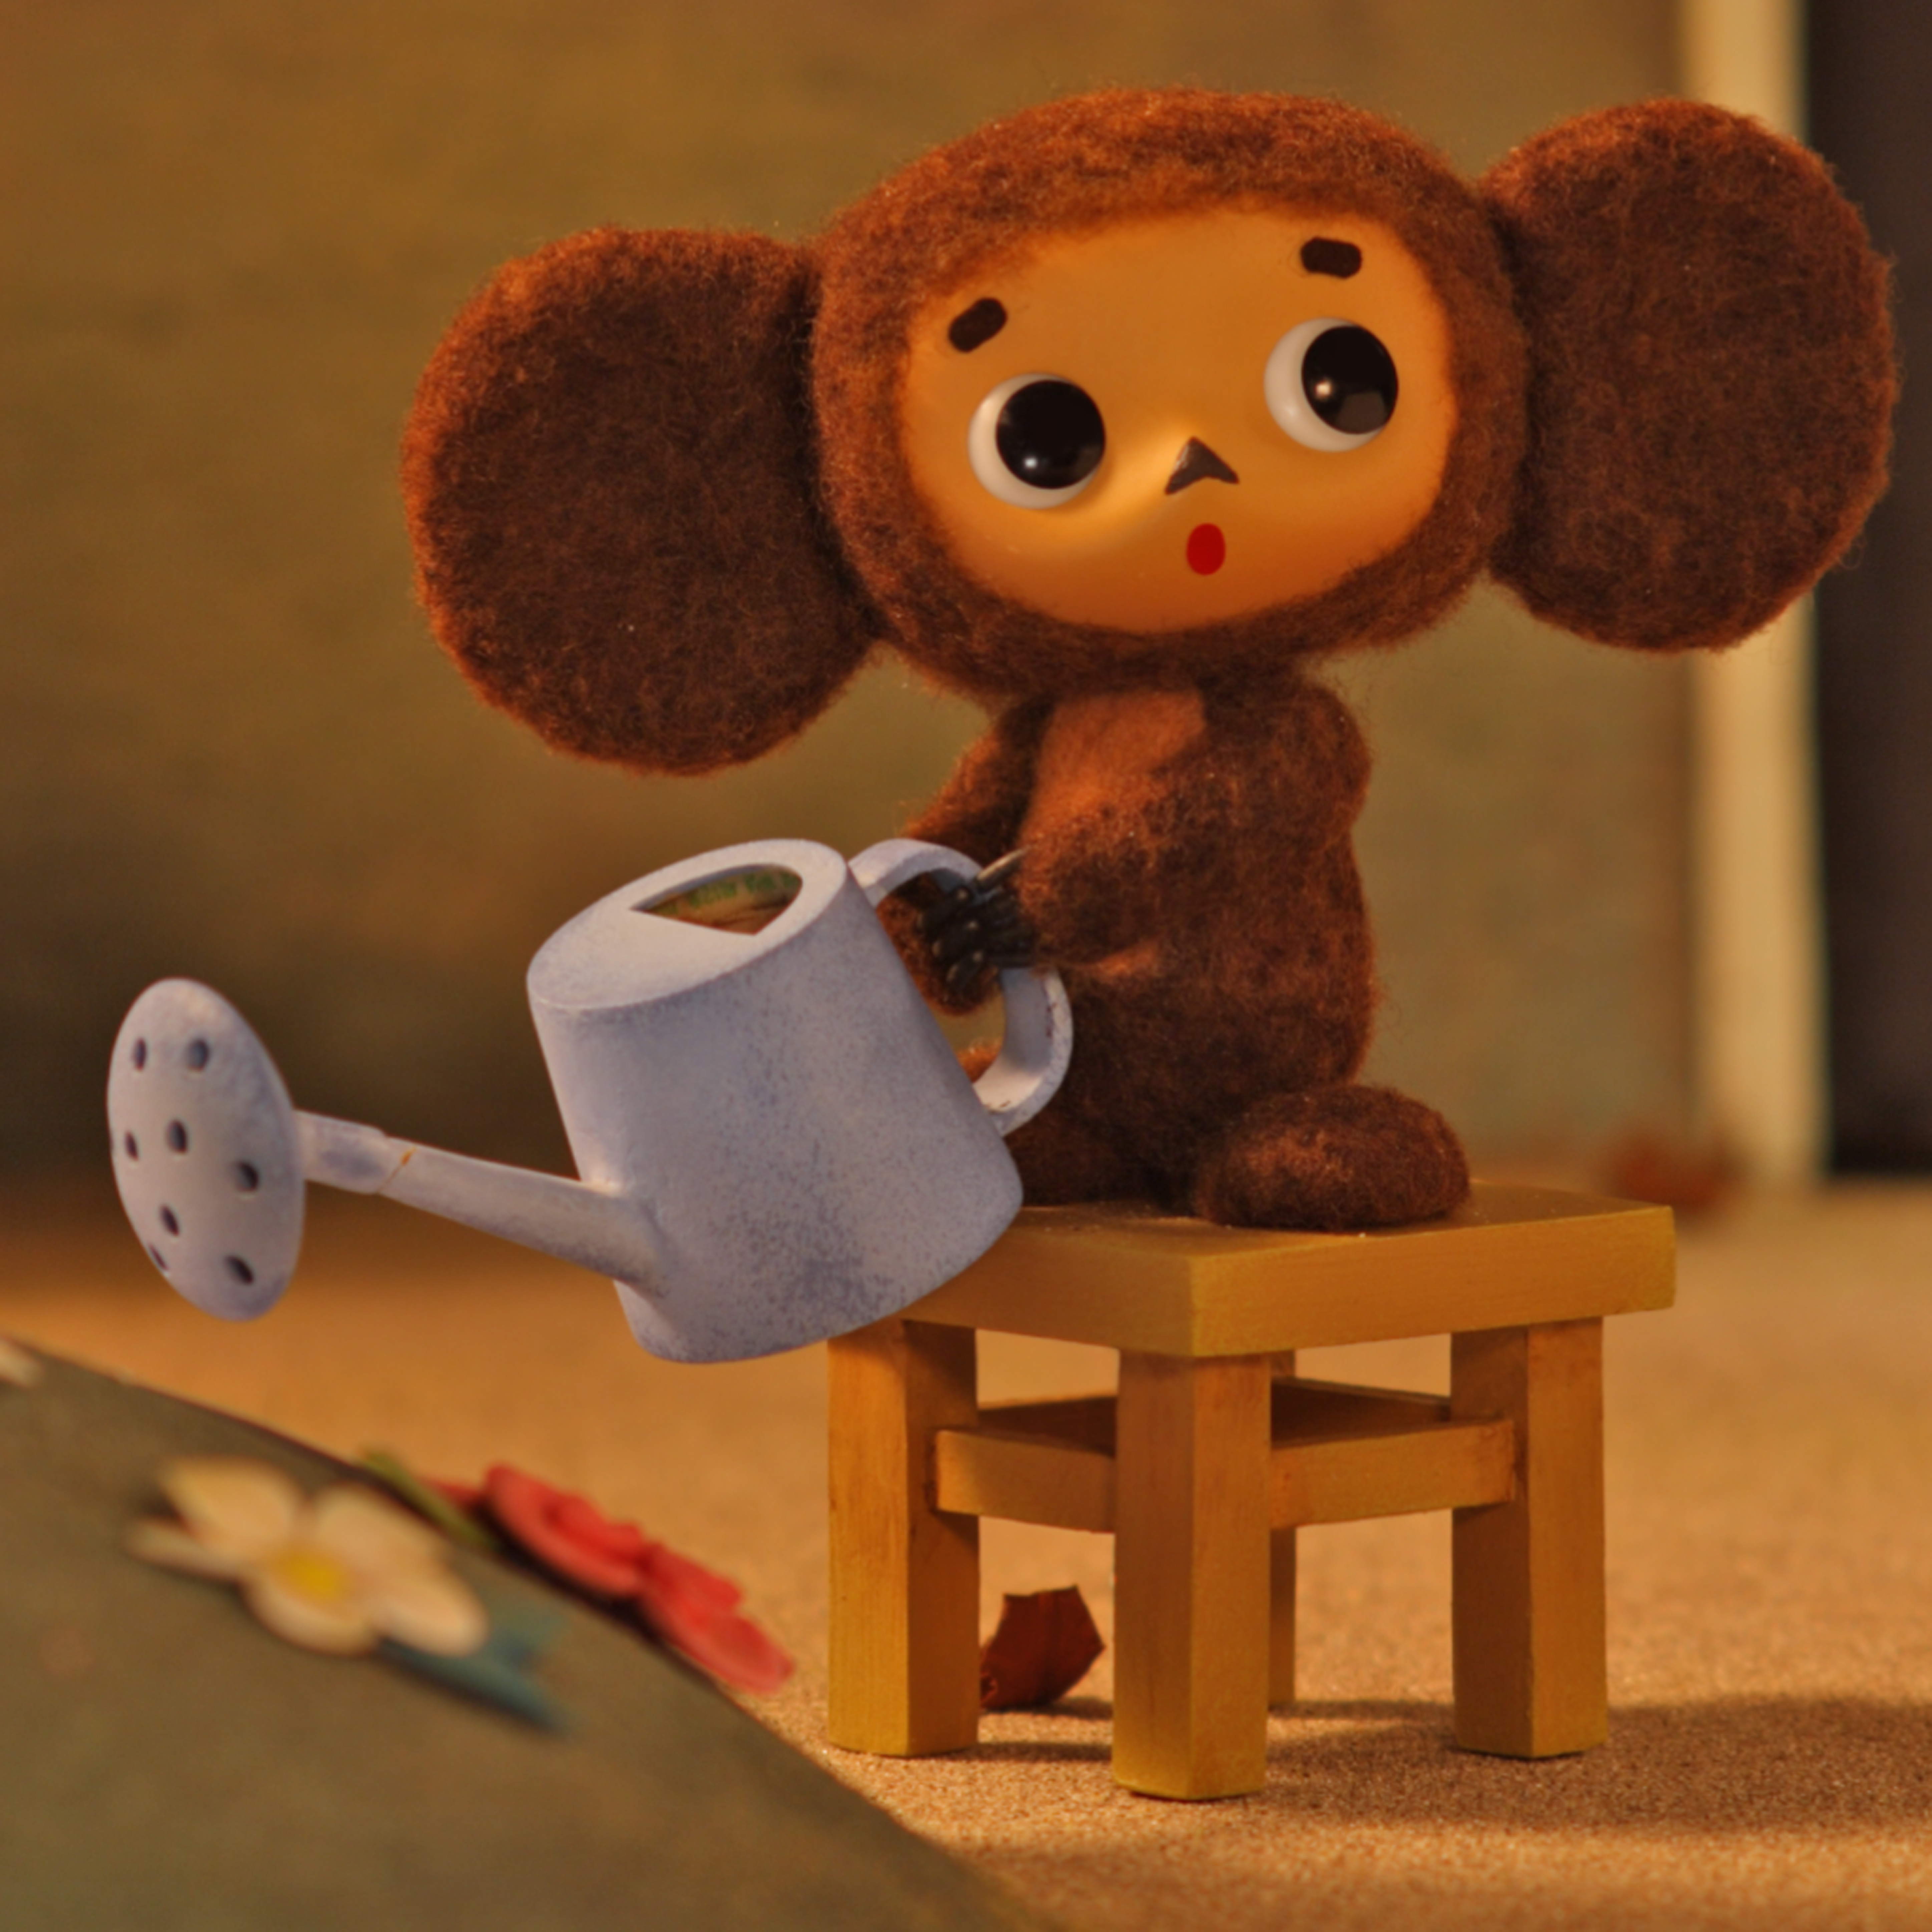 A new cartoon about Cheburashka is coming out.